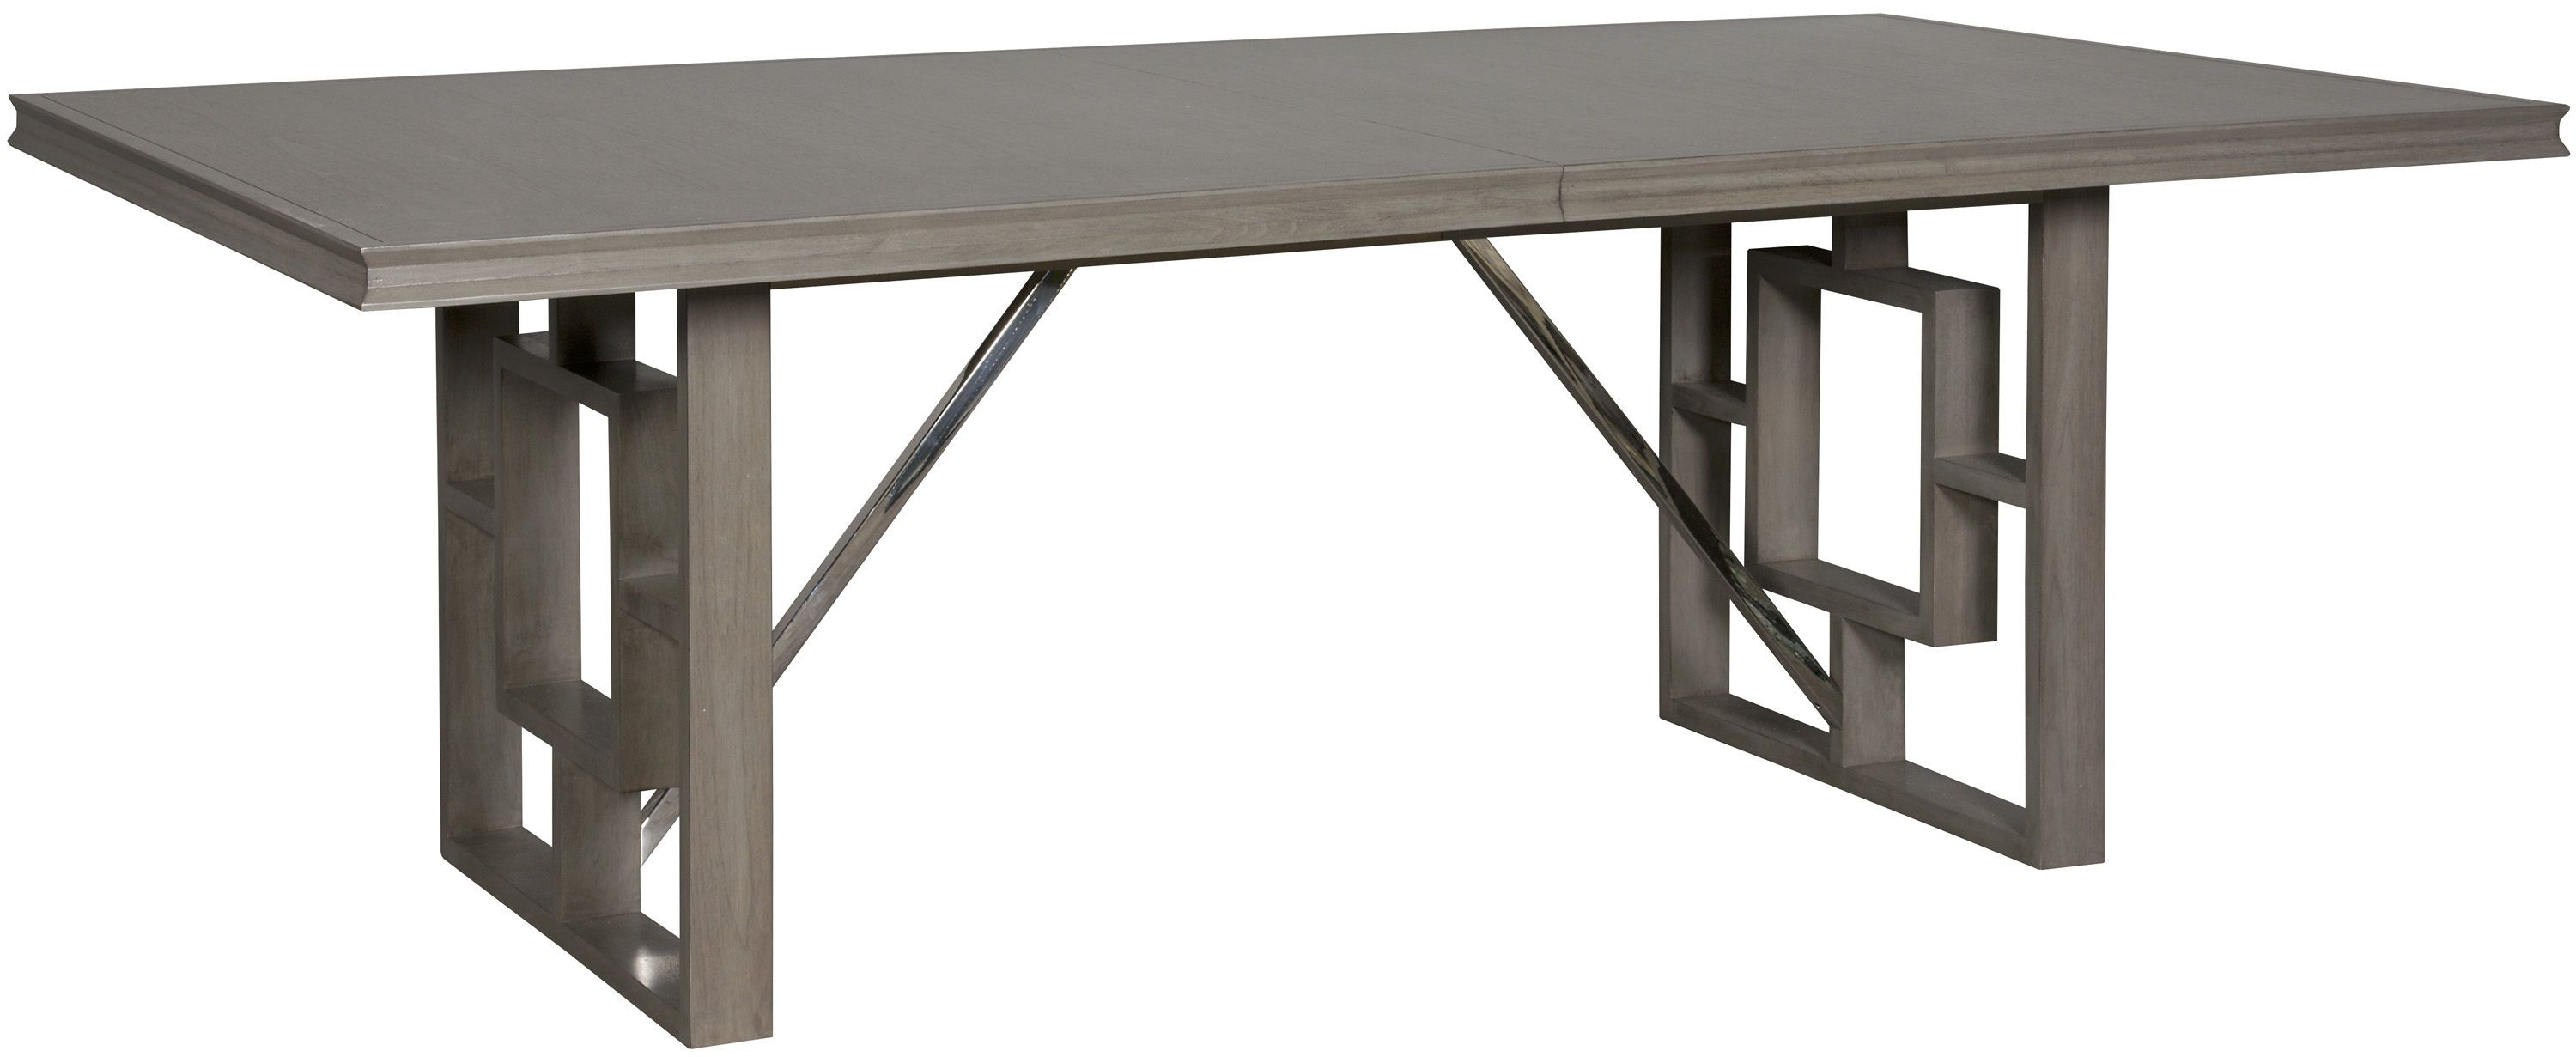 Vanguard Dining Room Seneca Table 9716T